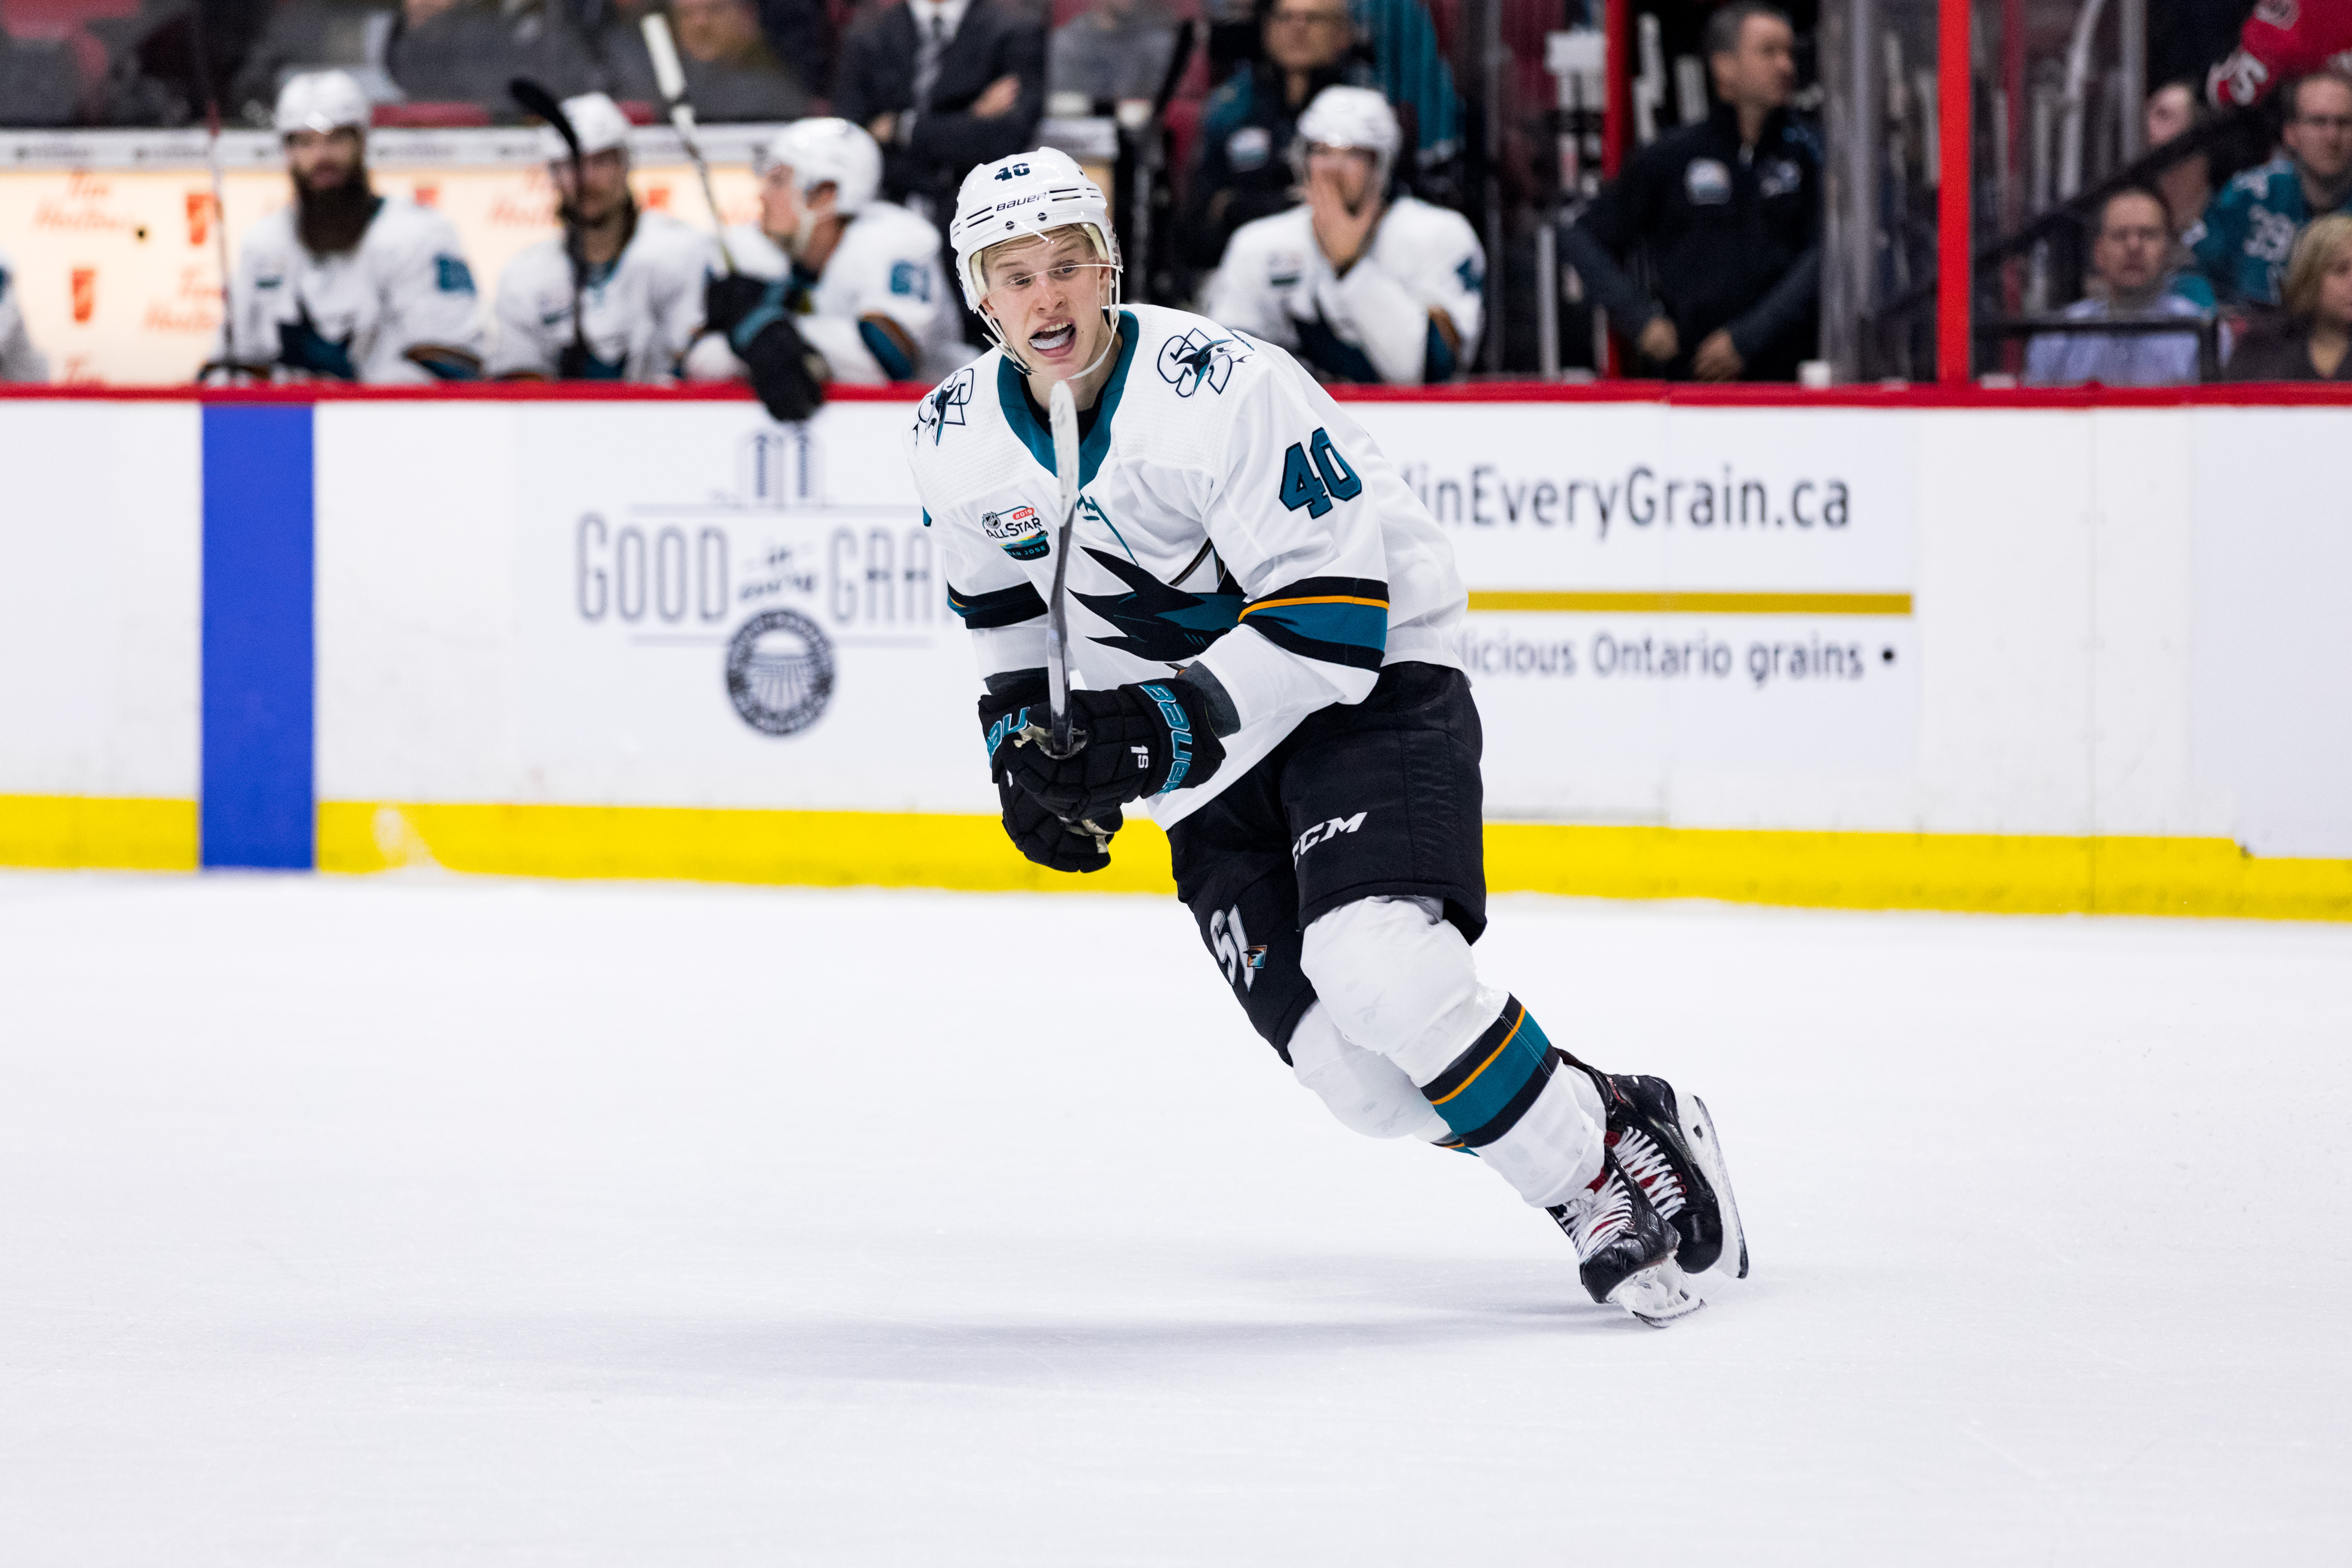 San Jose Sharks Center Antti Suomela (40) skates with the play during third period National Hockey League action between the San Jose Sharks and Ottawa Senators on December 1, 2018, at Canadian Tire Centre in Ottawa, ON, Canada.